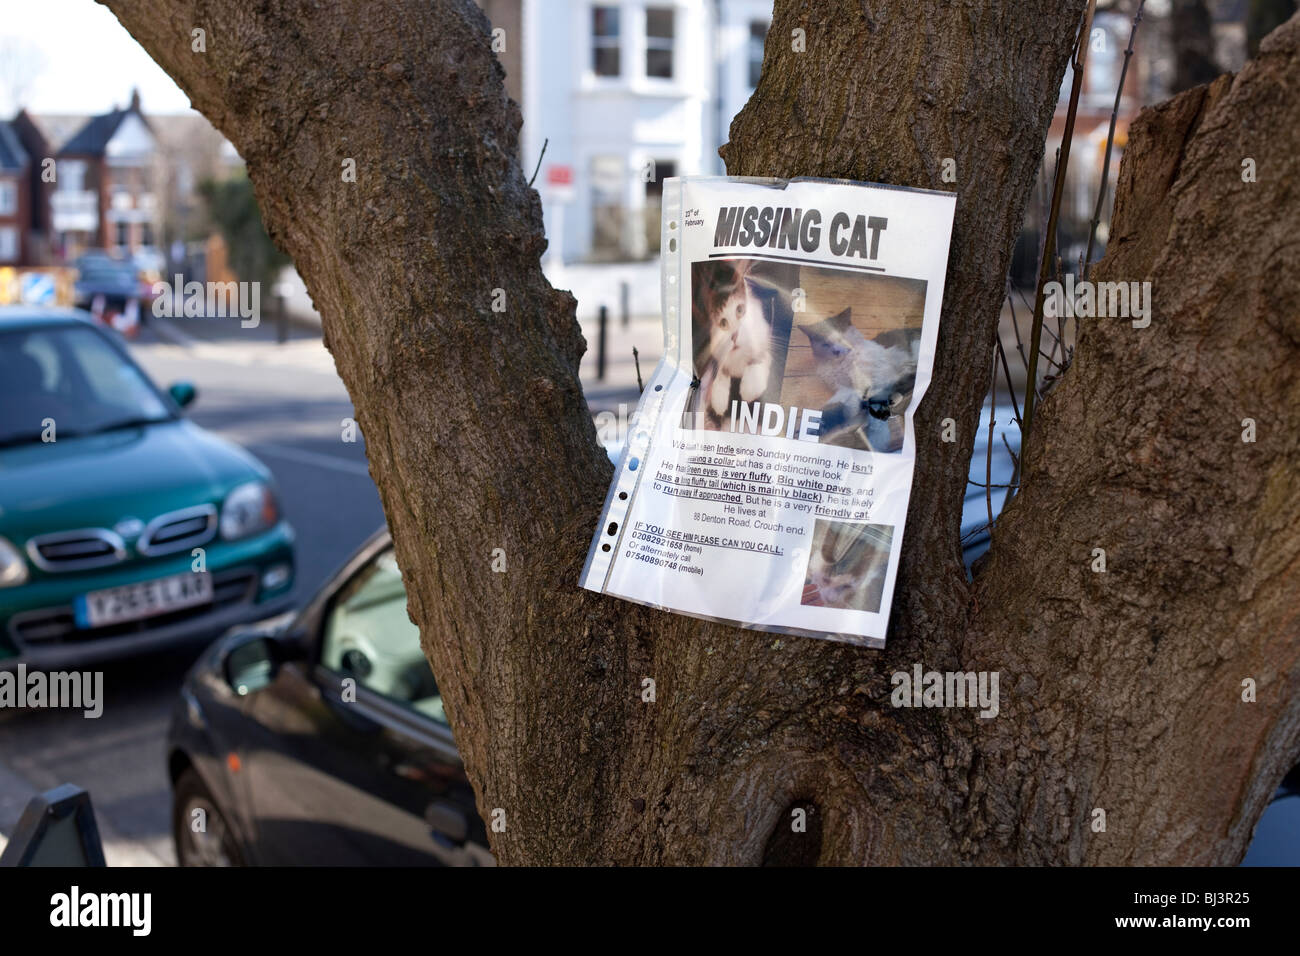 Missing Cat Stock Photos Amp Missing Cat Stock Images Alamy